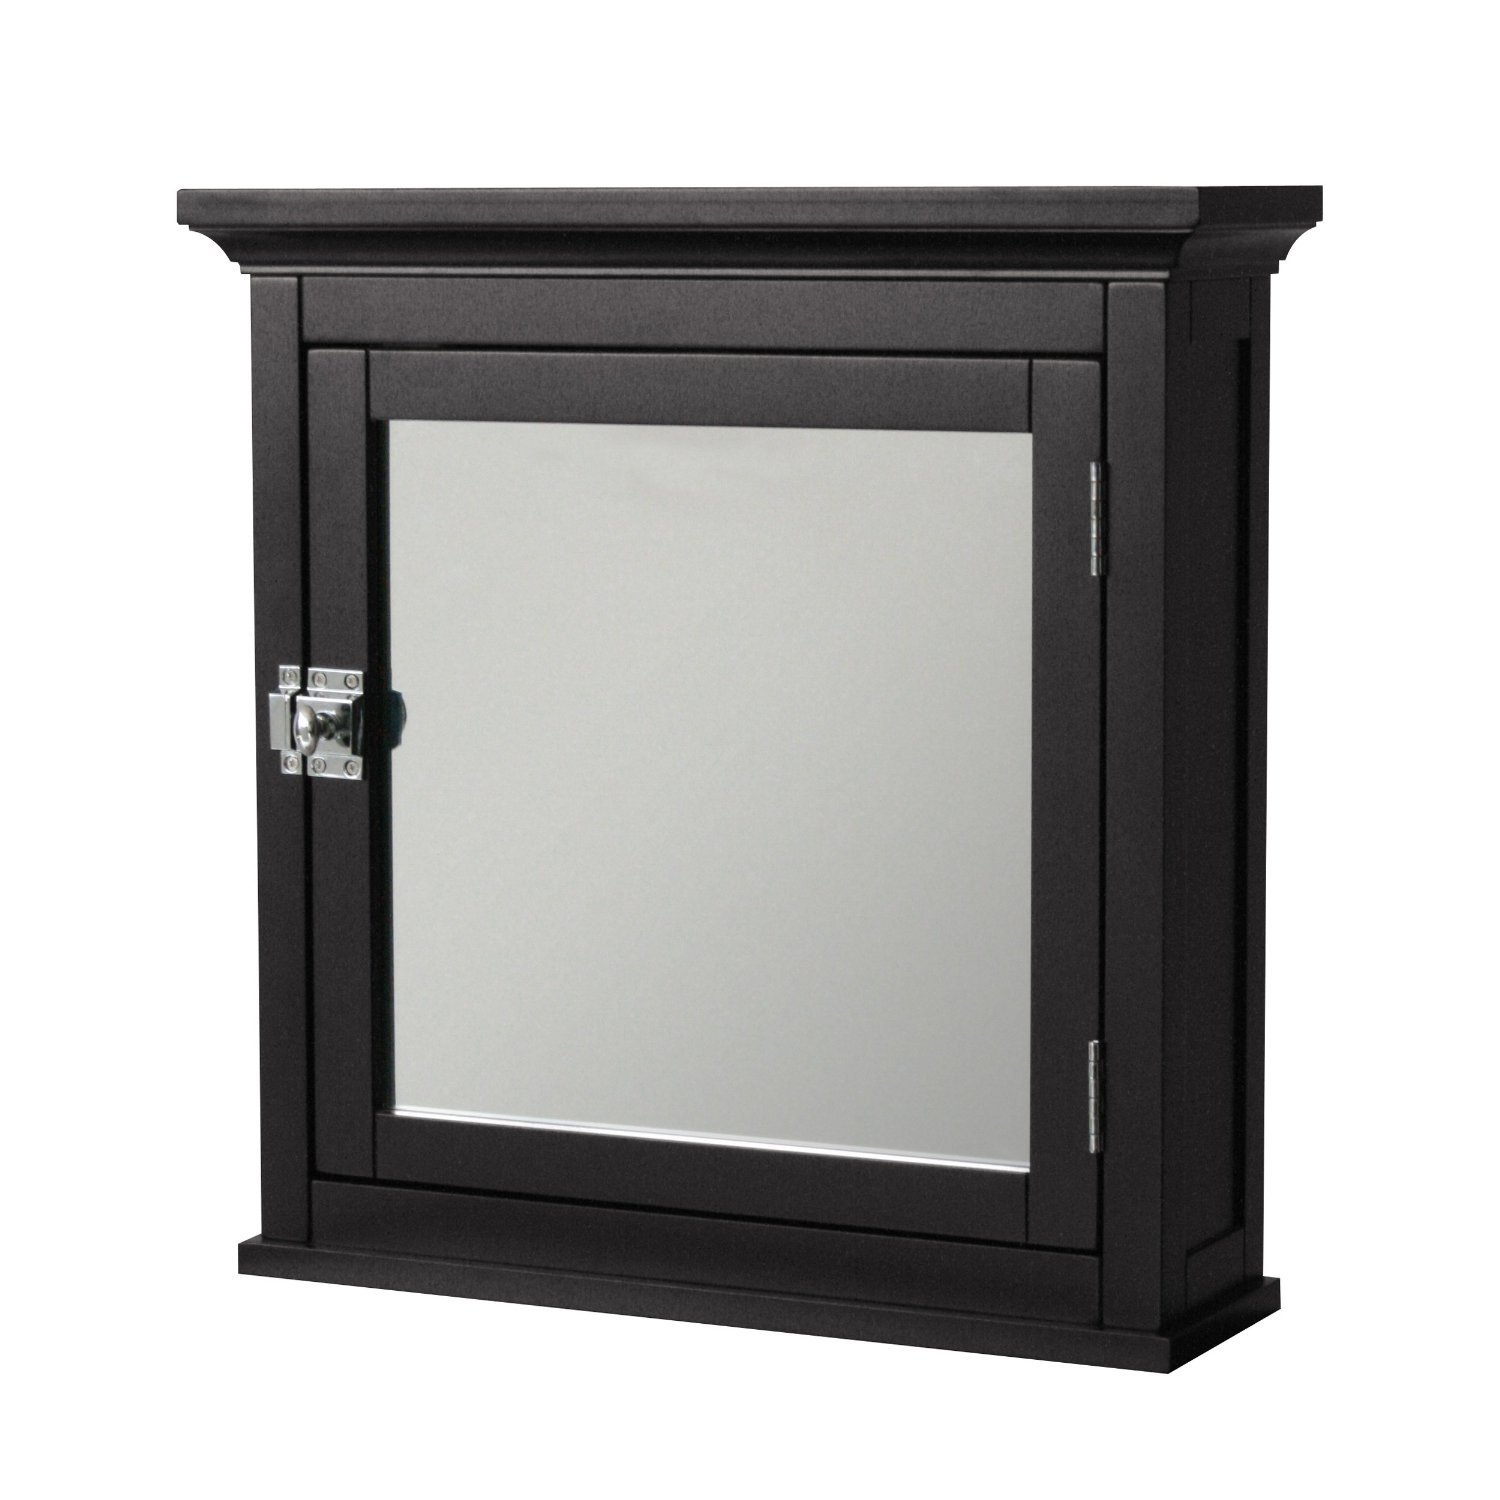 Cheap In Wall Cabinet, find In Wall Cabinet deals on line at Alibaba.com